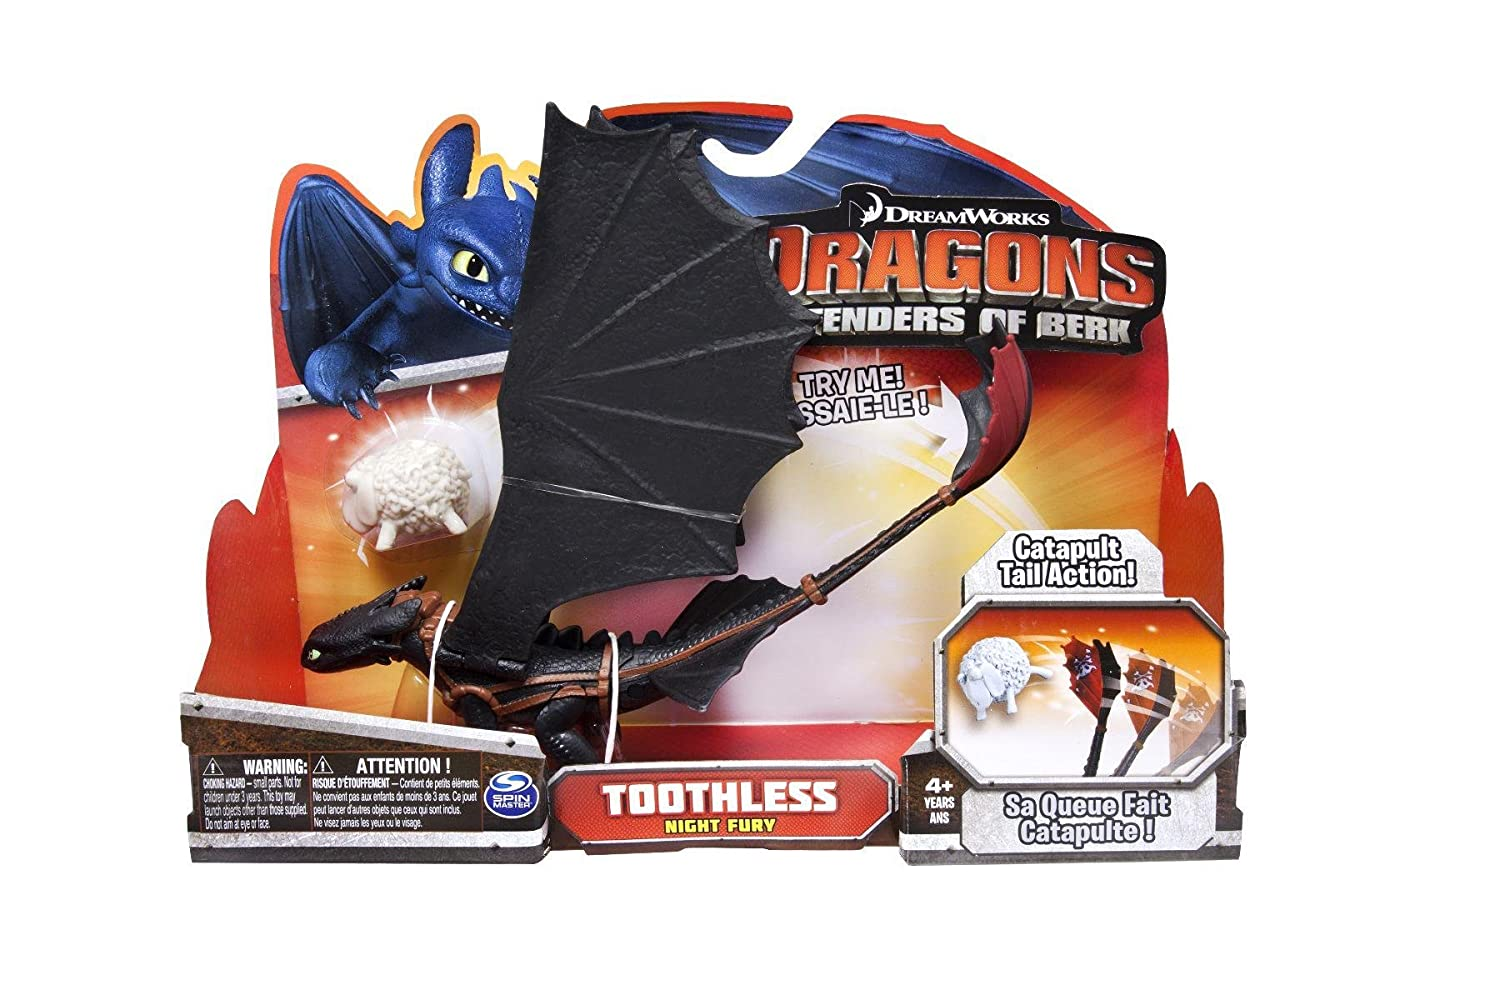 Toothless Night Fury Action Dragon Figure Catapult Tail DreamWorks Dragons Defenders of Berk